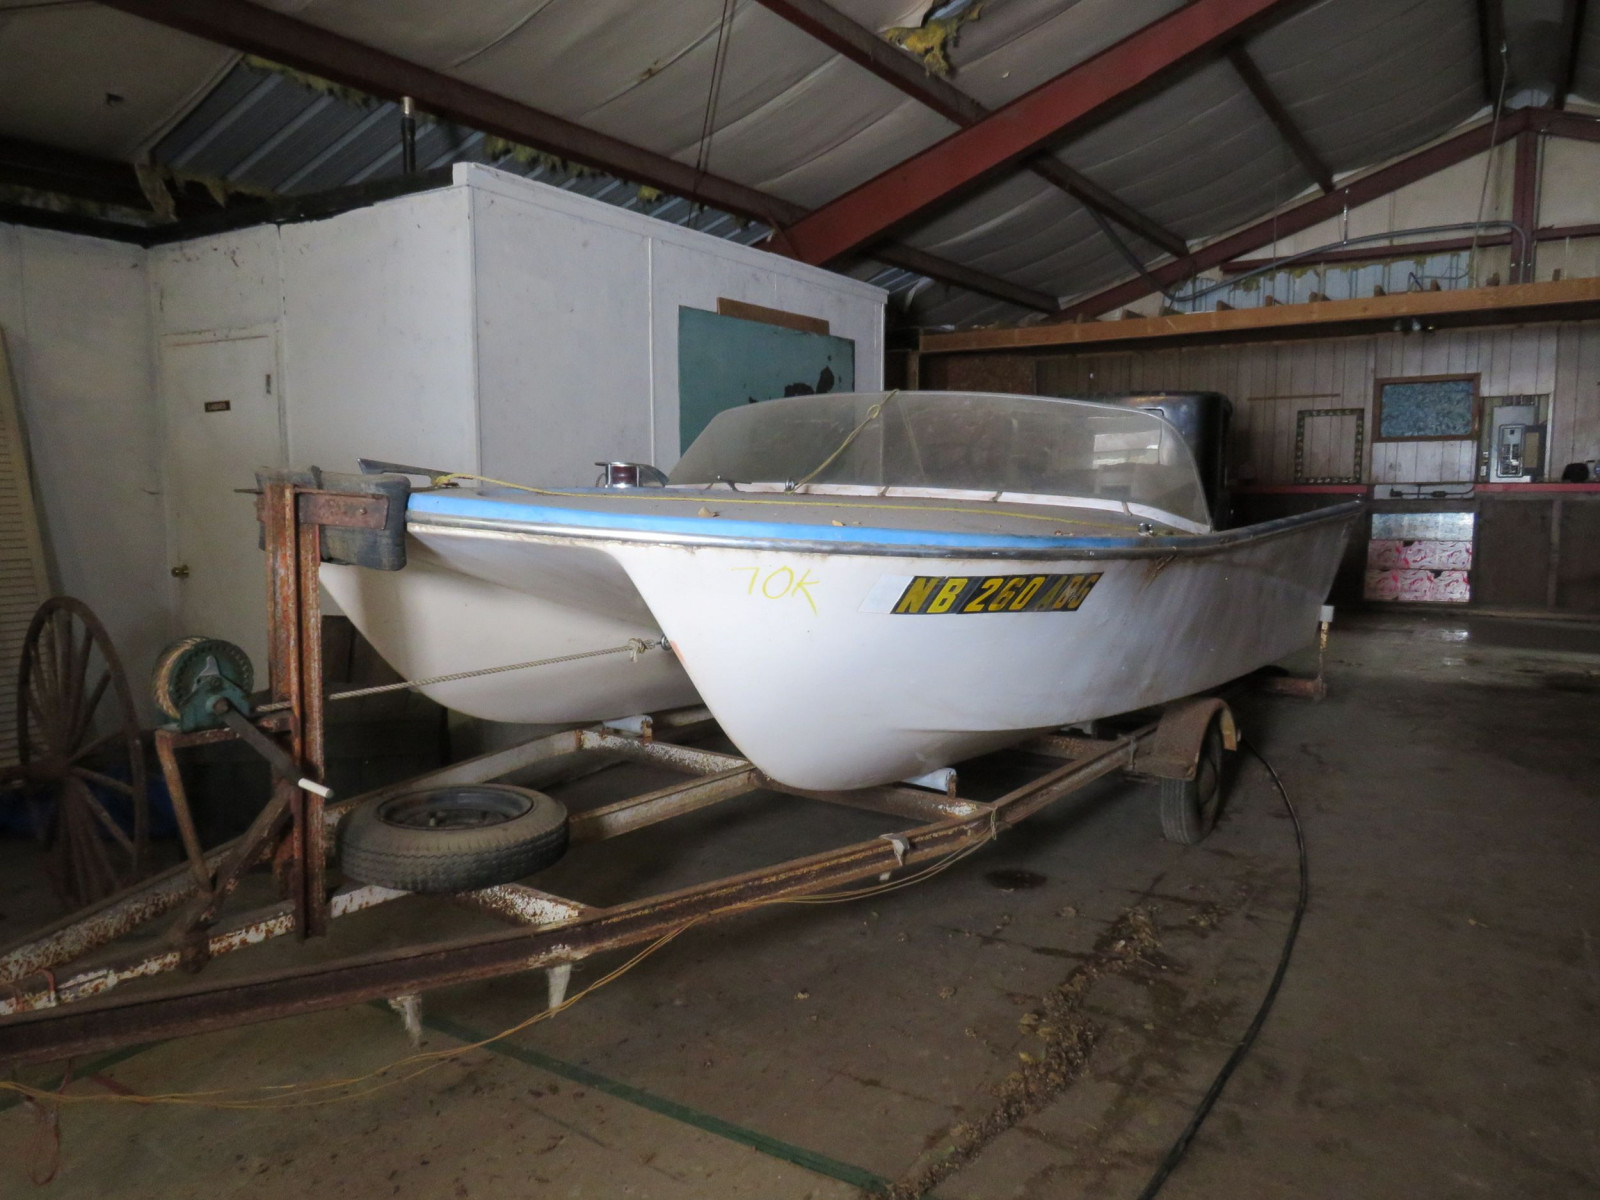 Vintage Power Cat Boat - Image 1